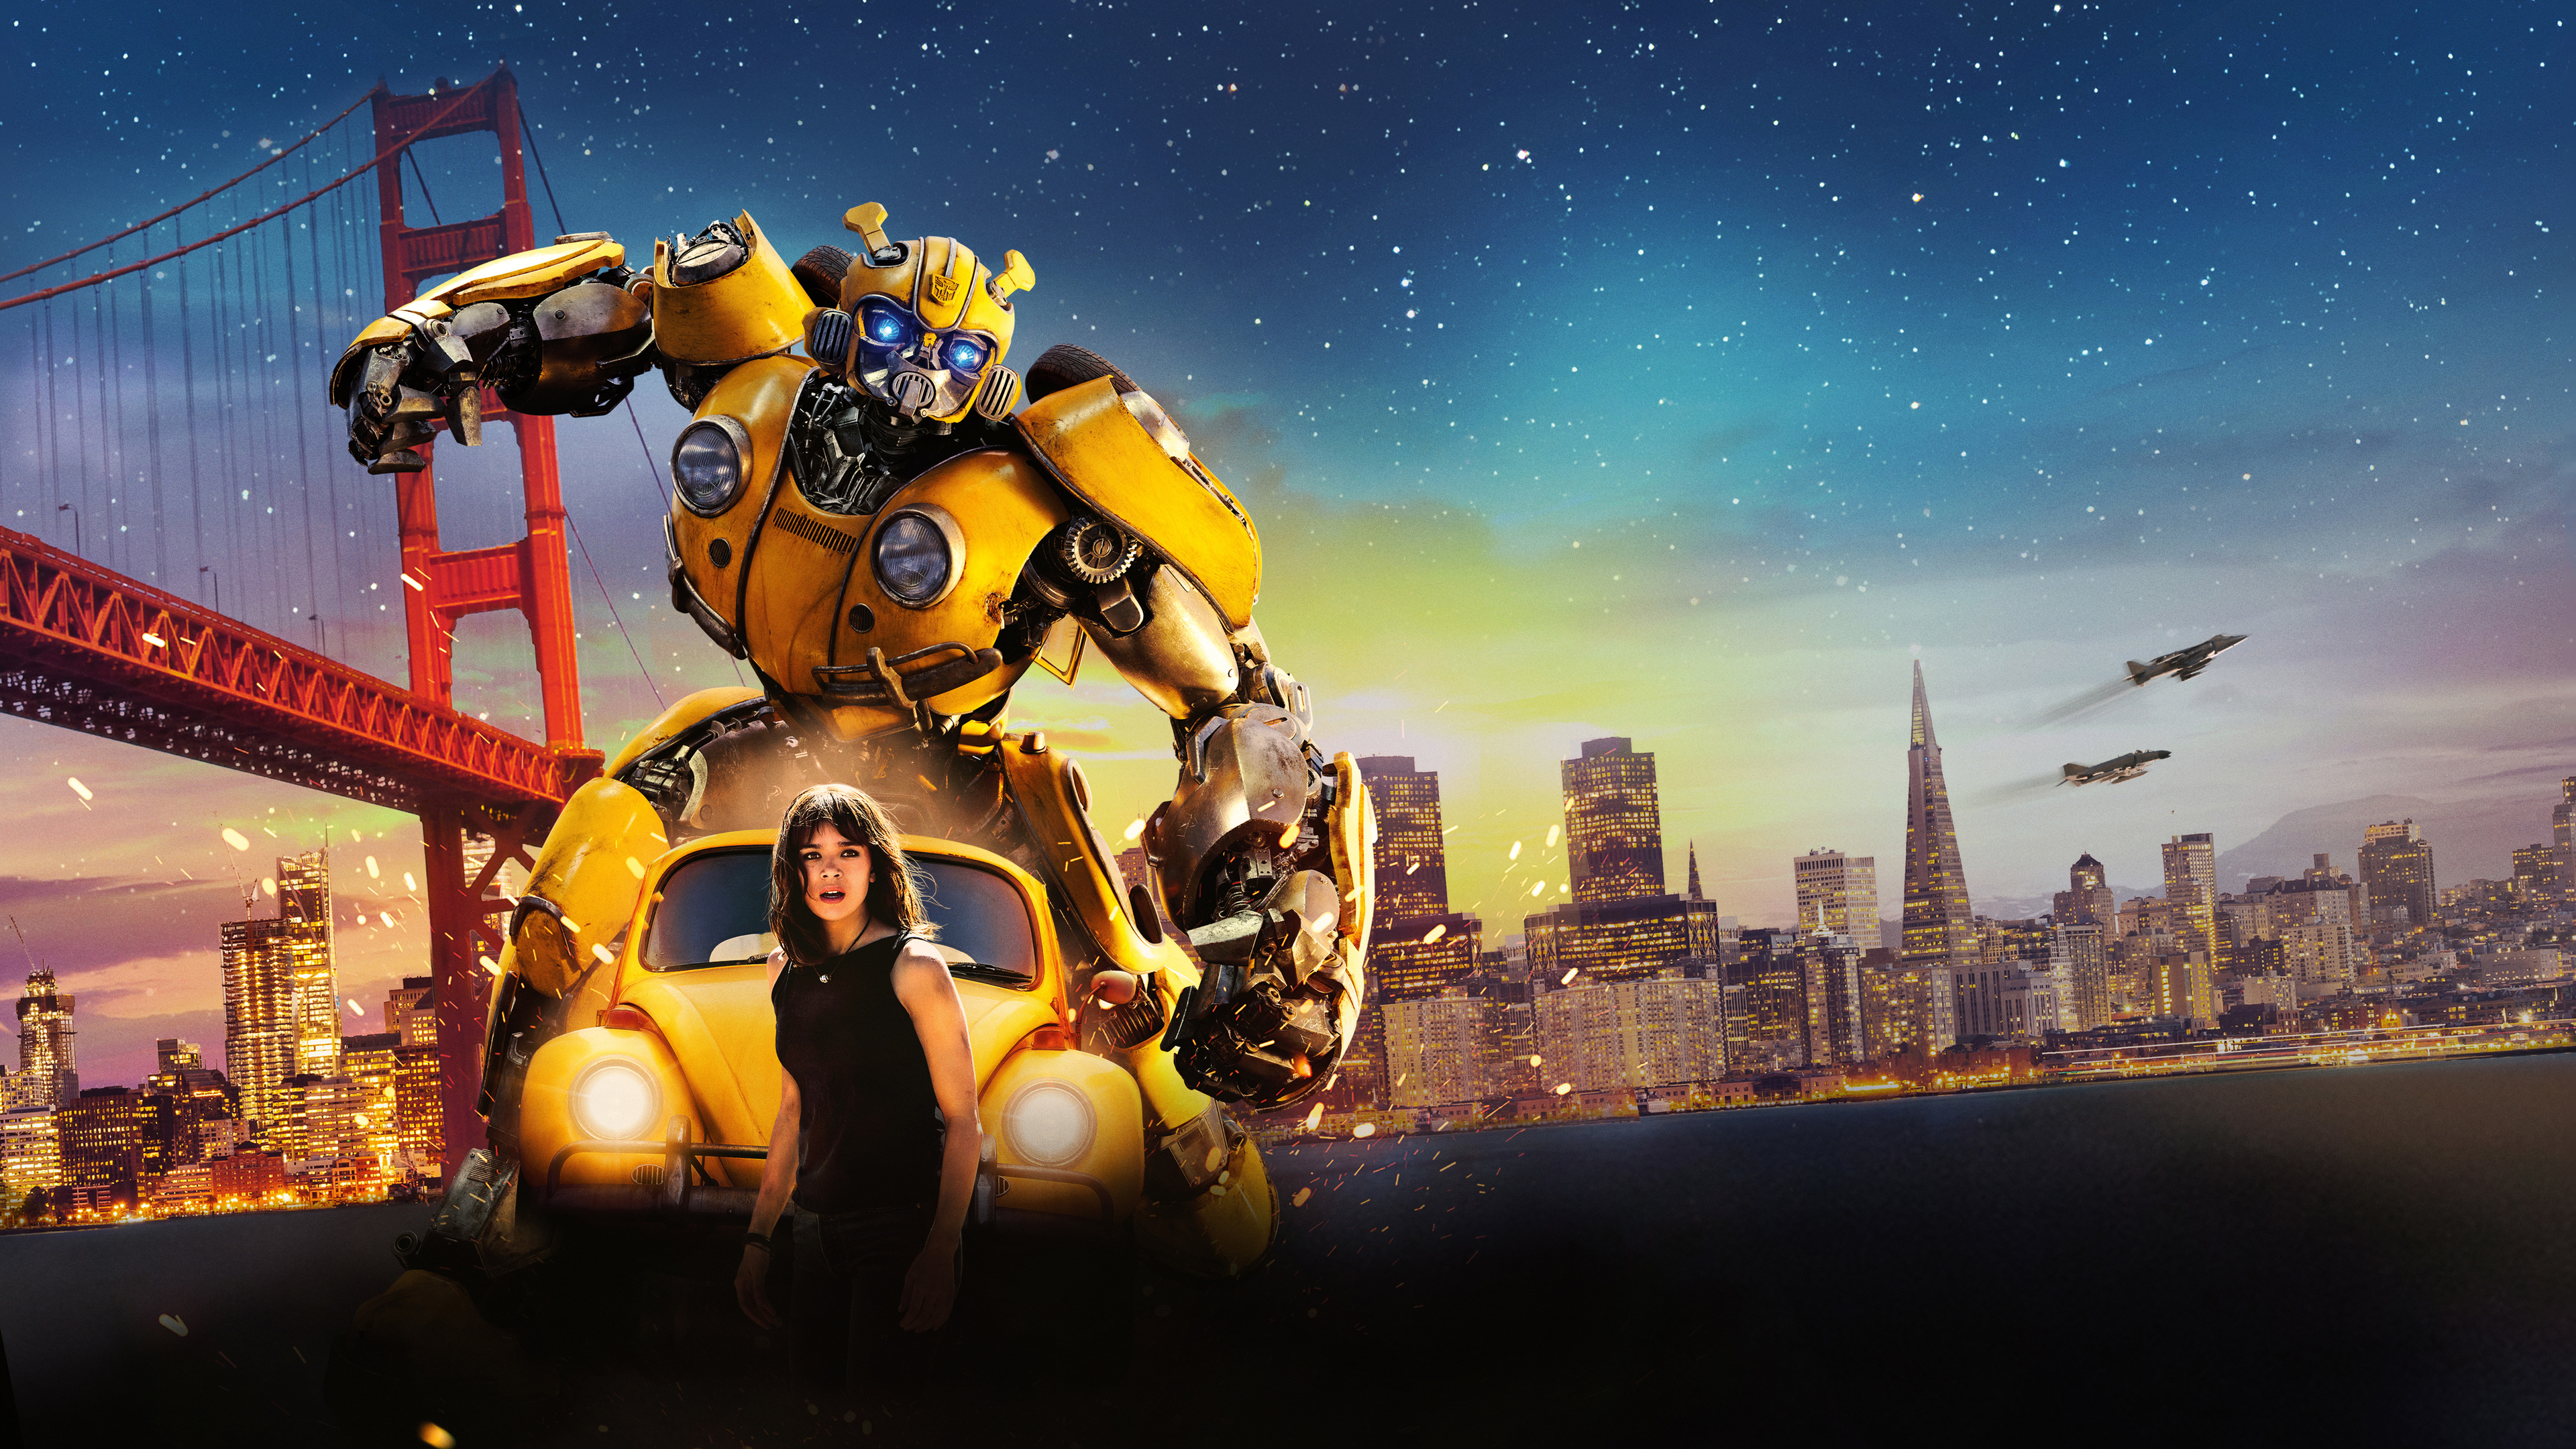 bumblebee movie 4k 1546275138 - Bumblebee Movie 4k - movies wallpapers, hd-wallpapers, bumblebee wallpapers, 4k-wallpapers, 2018-movies-wallpapers